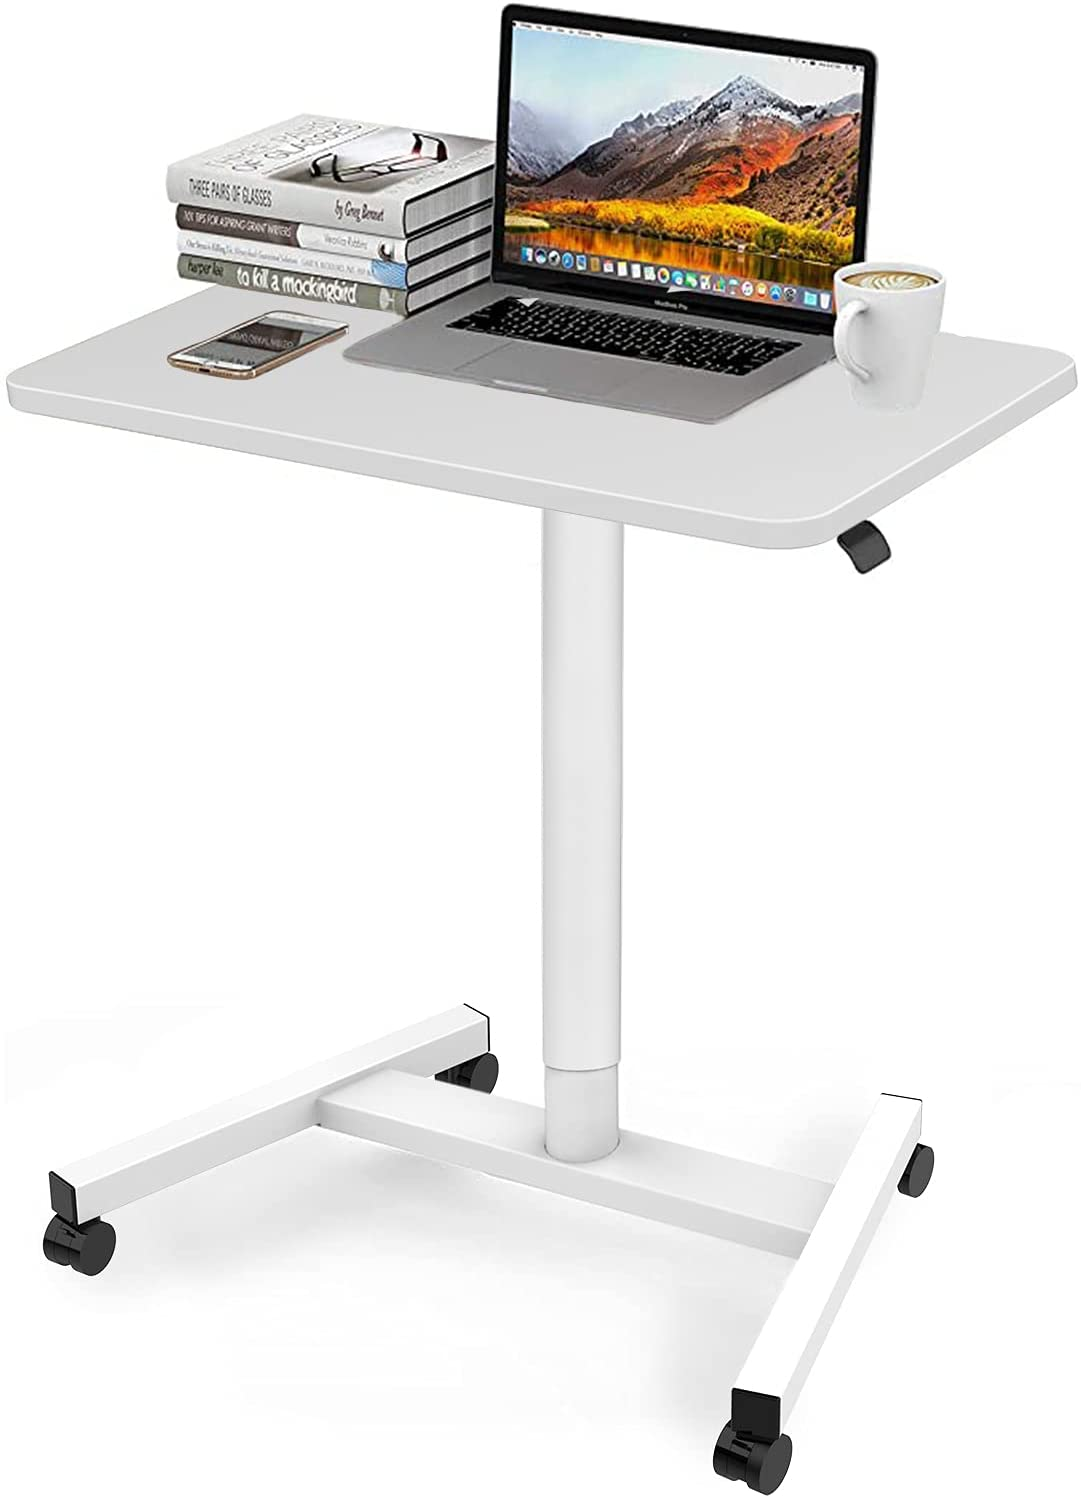 28 Inch Height Adjustable Laptop Sit Import with Desk Wheels Adj ! Super beauty product restock quality top! Stand